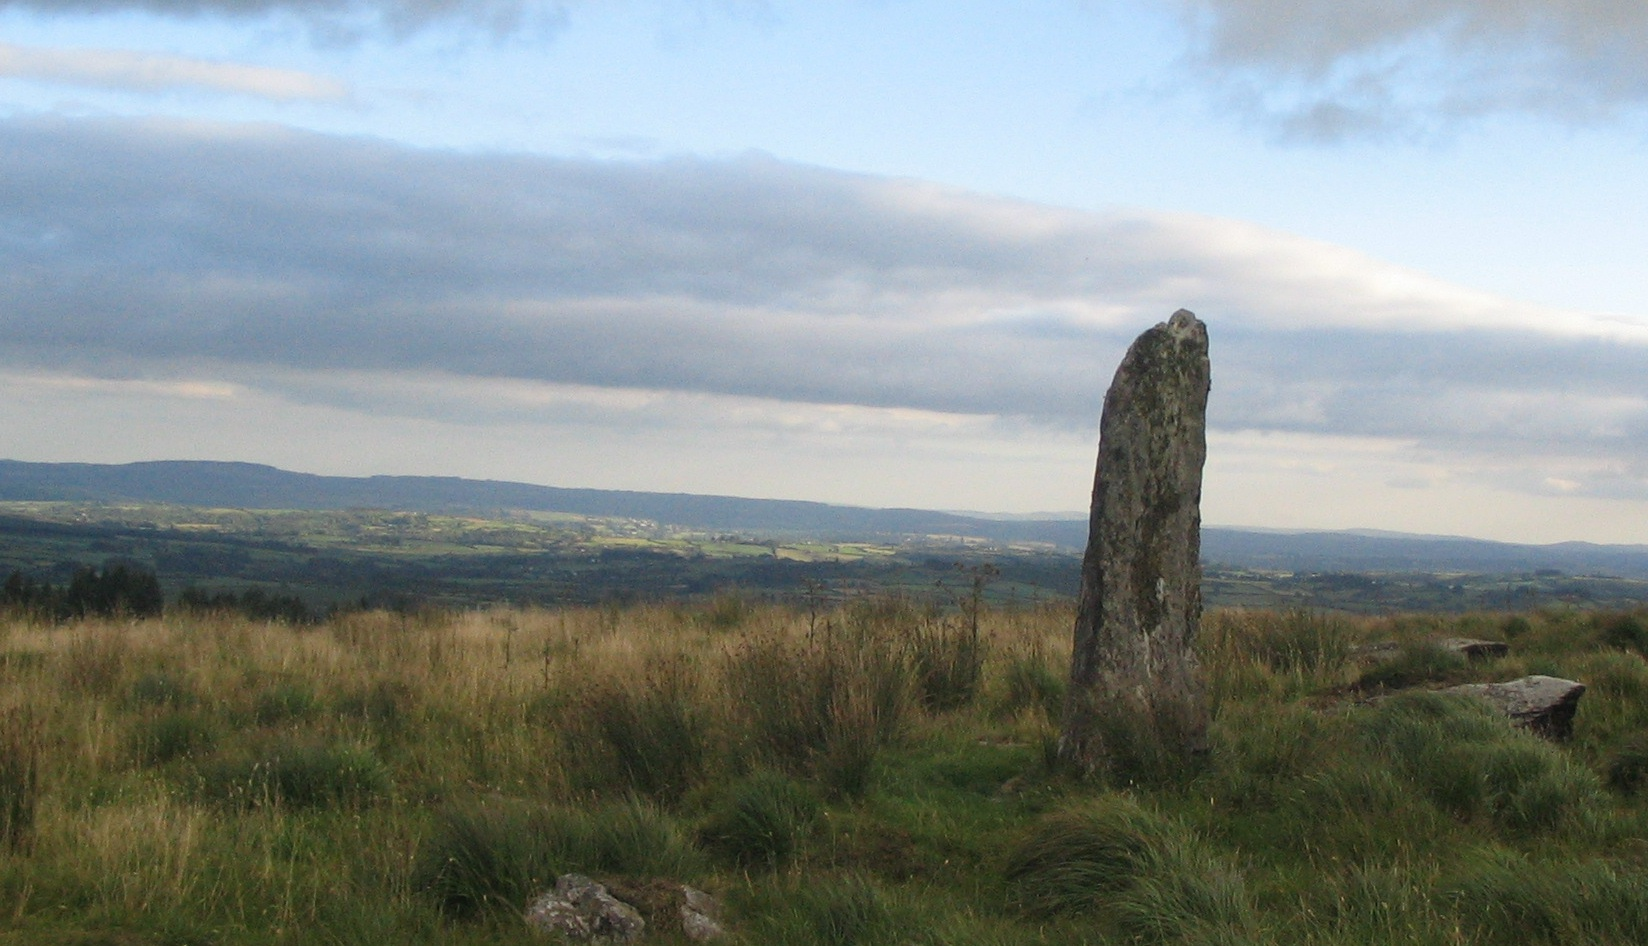 Unidentified standing stone located between Millstreet and Ballinagree, Co Cork, Ireland (public domain)